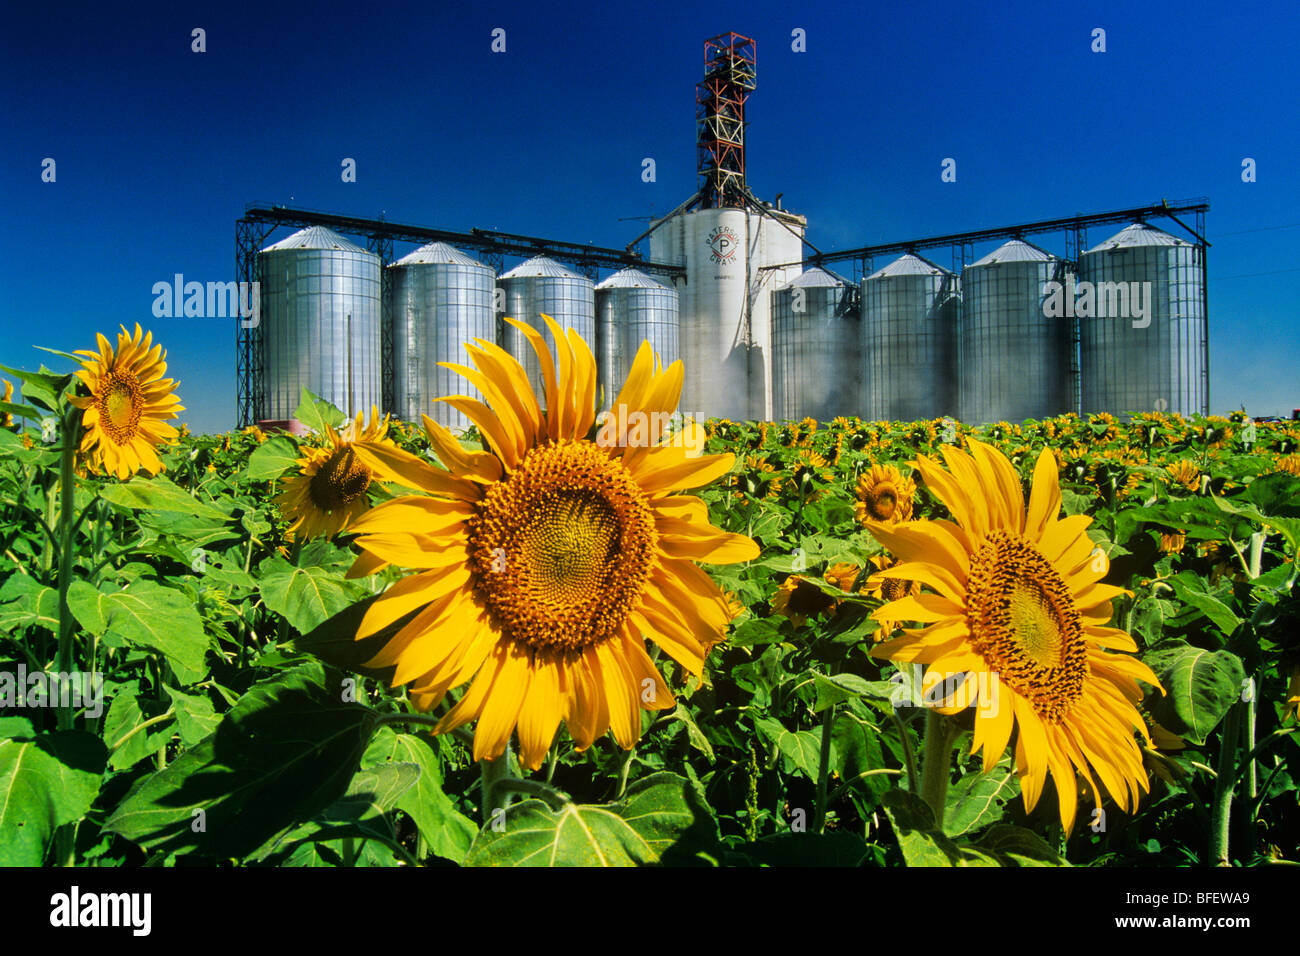 Sunflower (Helianthus annuus) field and inland grain terminal near Winnipeg, Manitoba, Canada Stock Photo